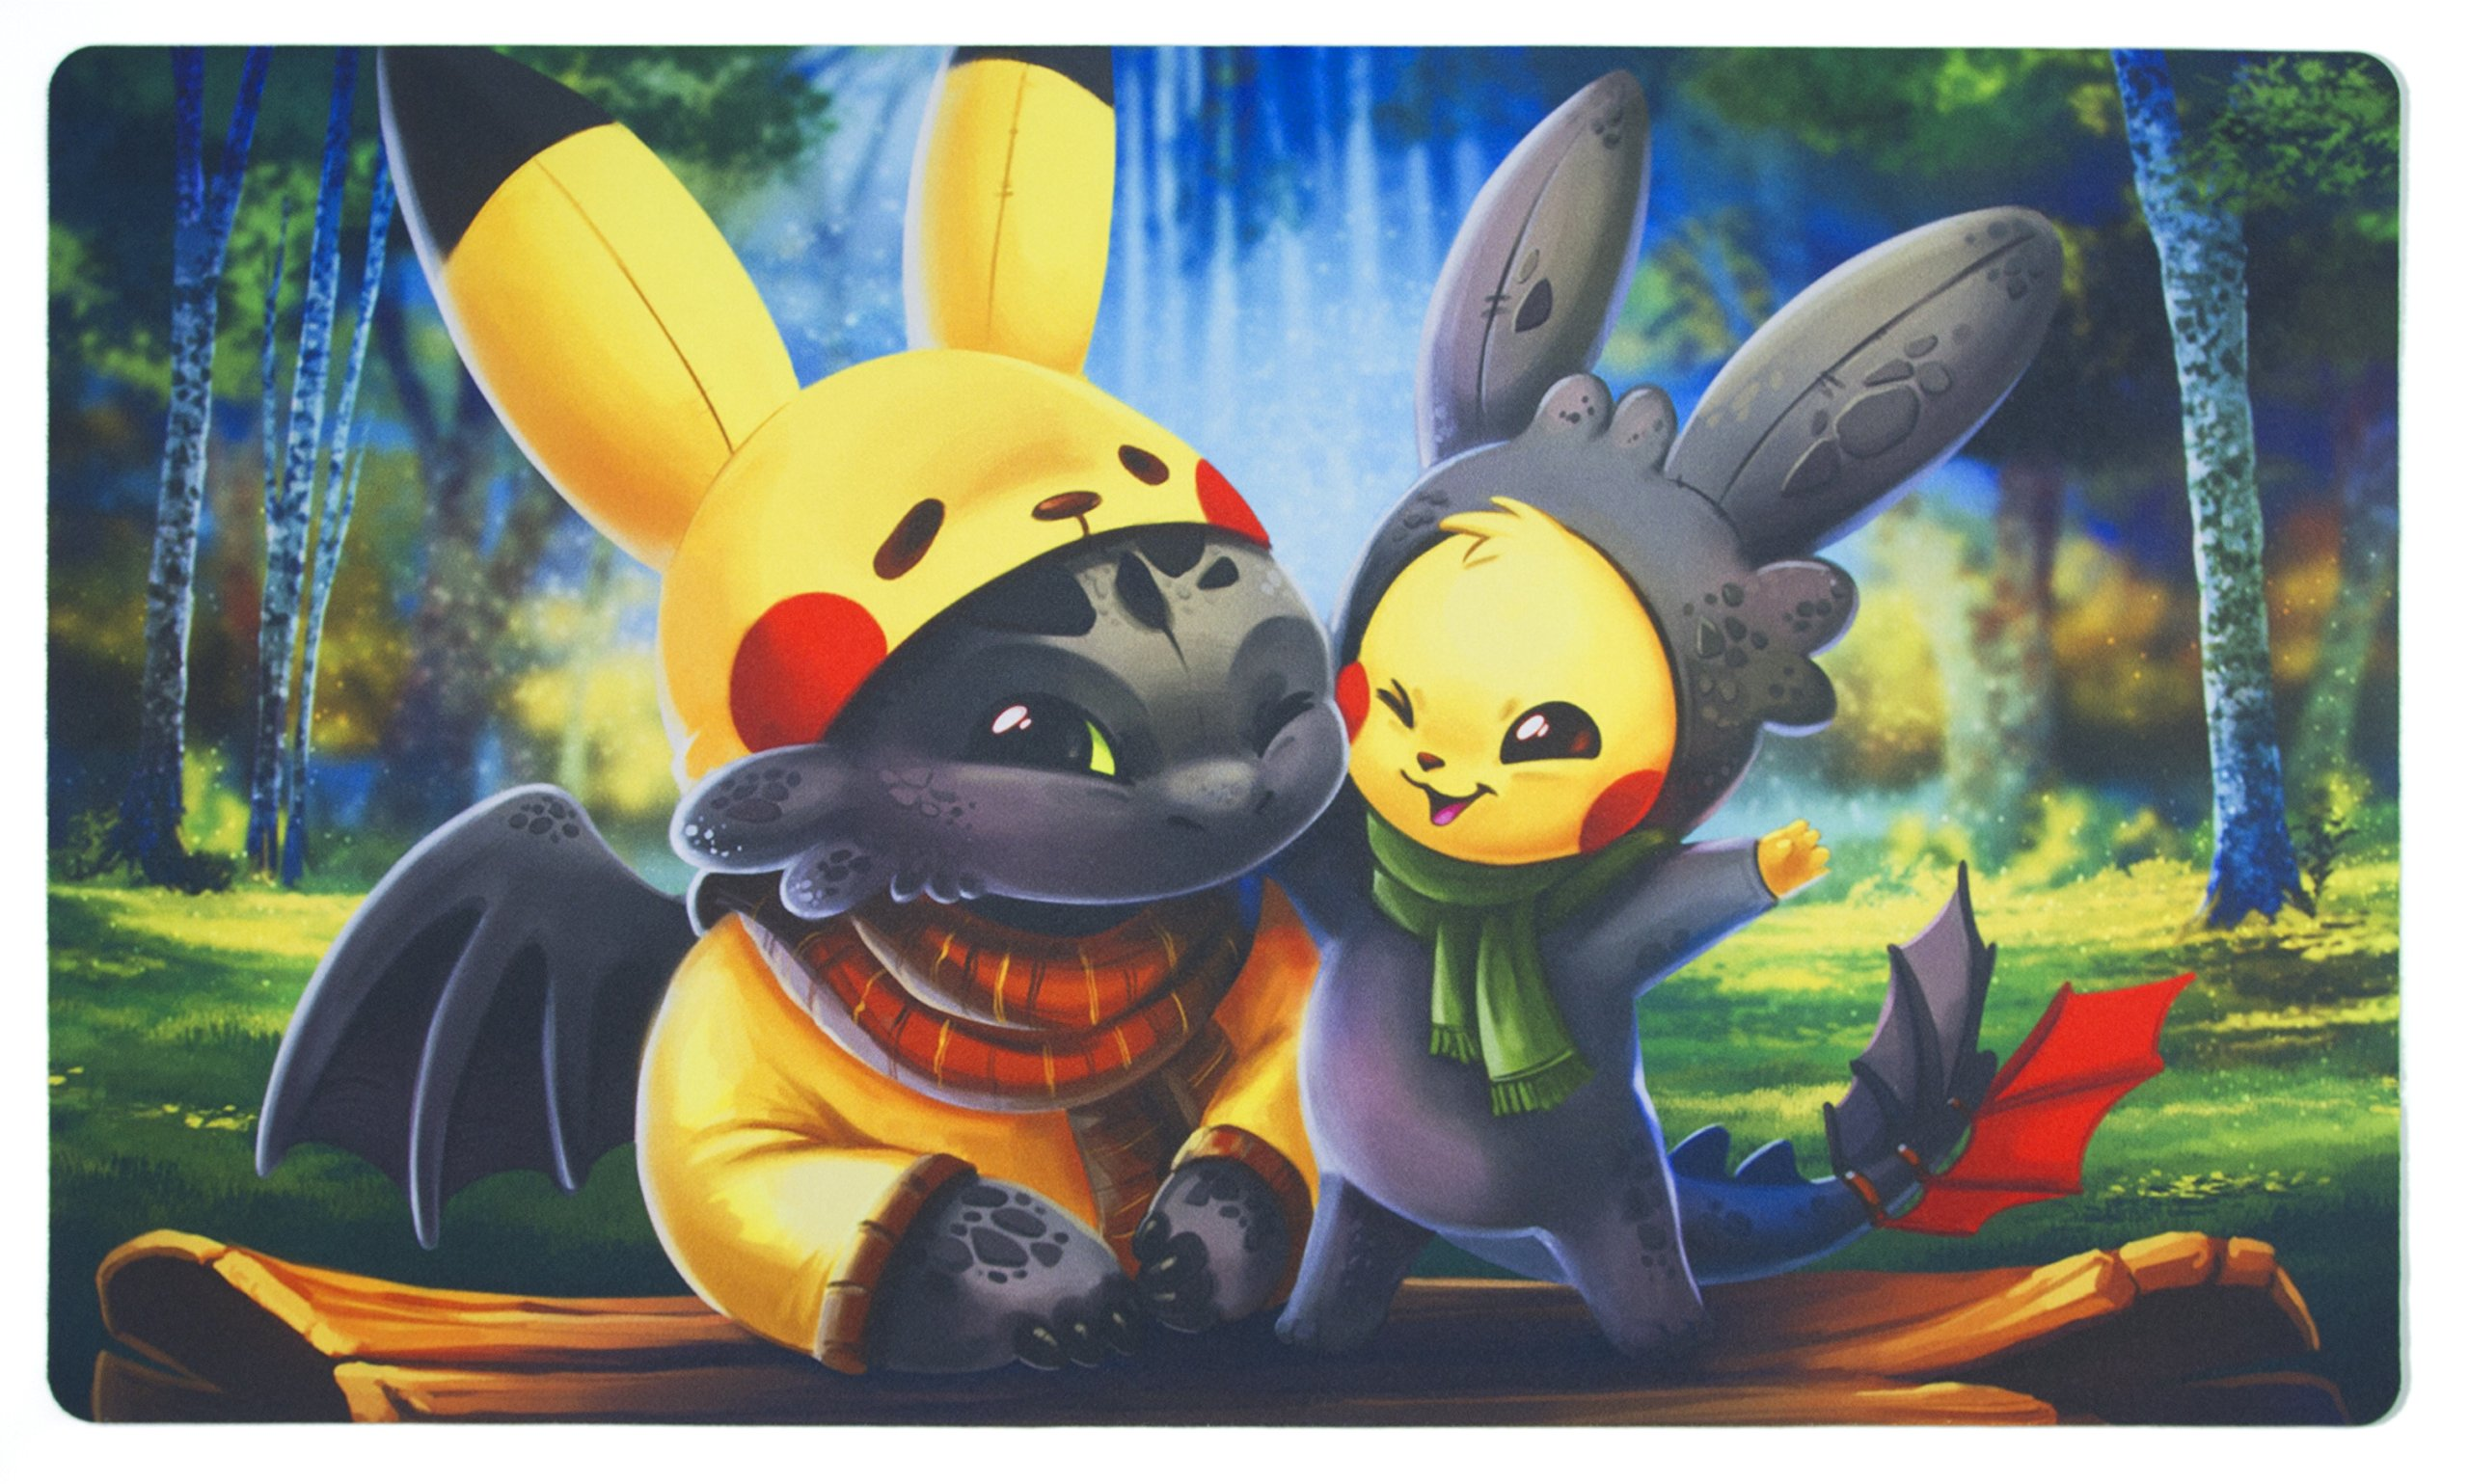 Cosplay Buddies Playmat Inked Gaming - Perfect for TCG Card Gaming! Your Game. Your Style.